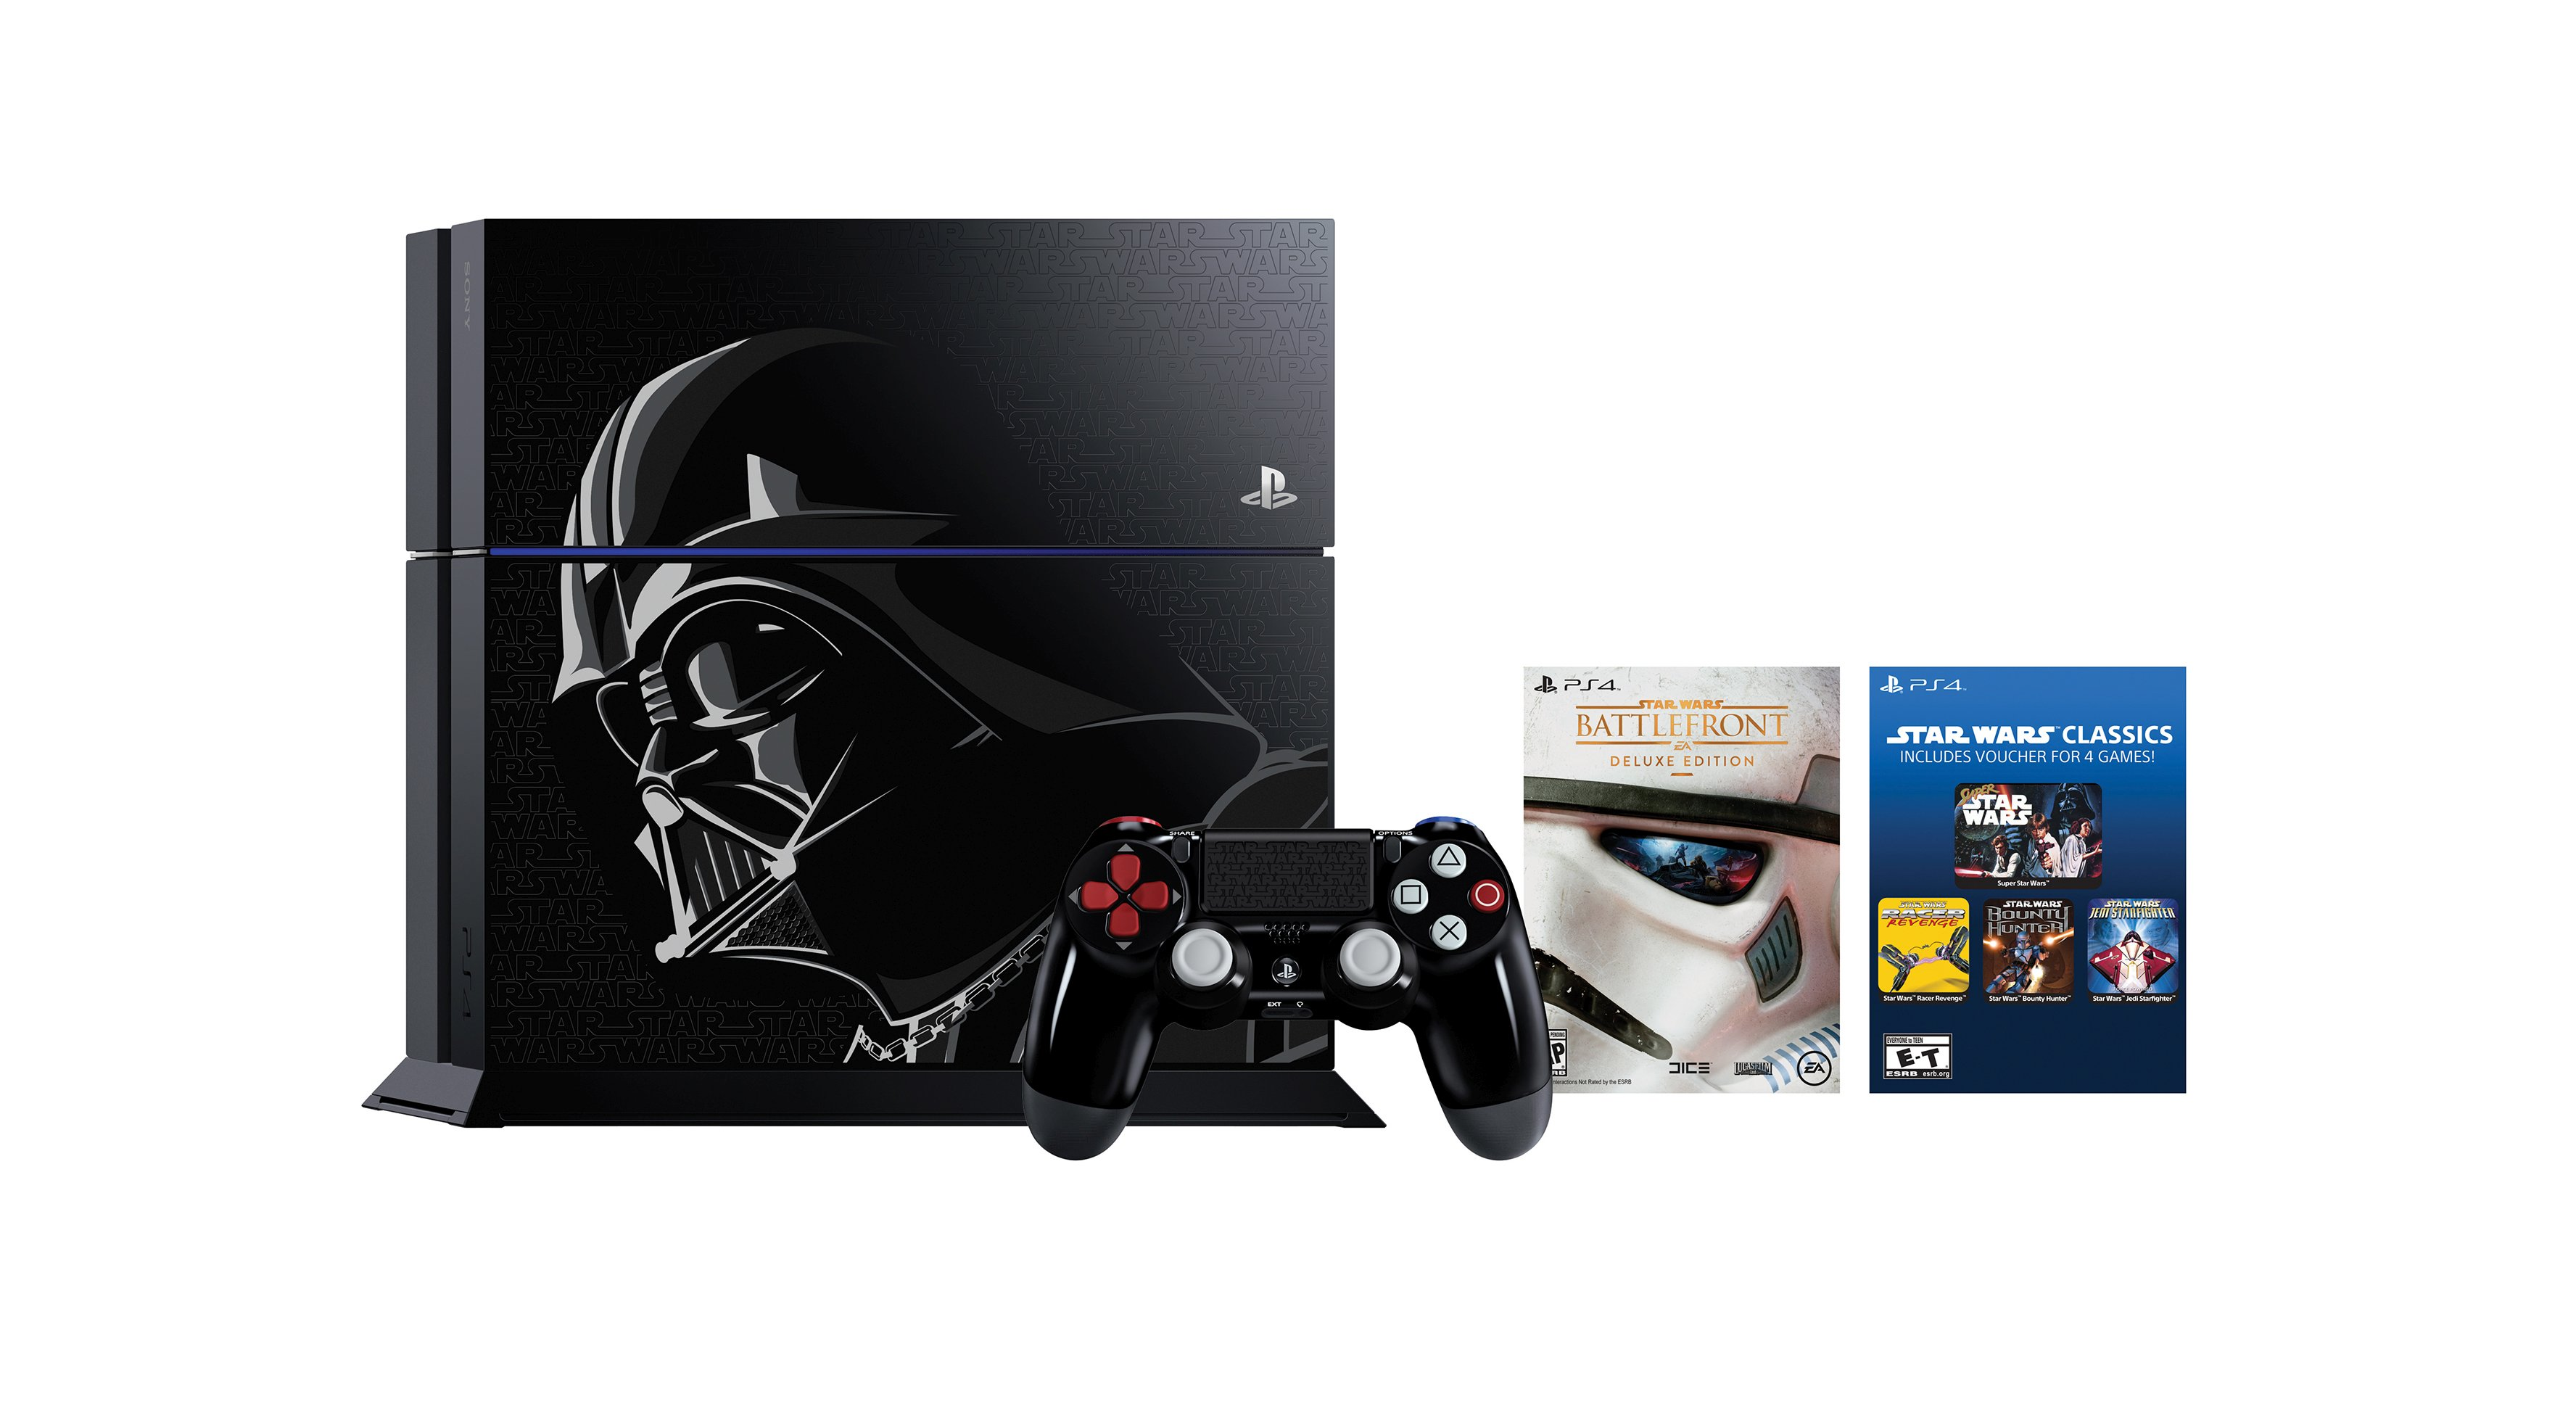 Star-Wars-Battlefront-Deluxe-Edition-PS4-Bundle